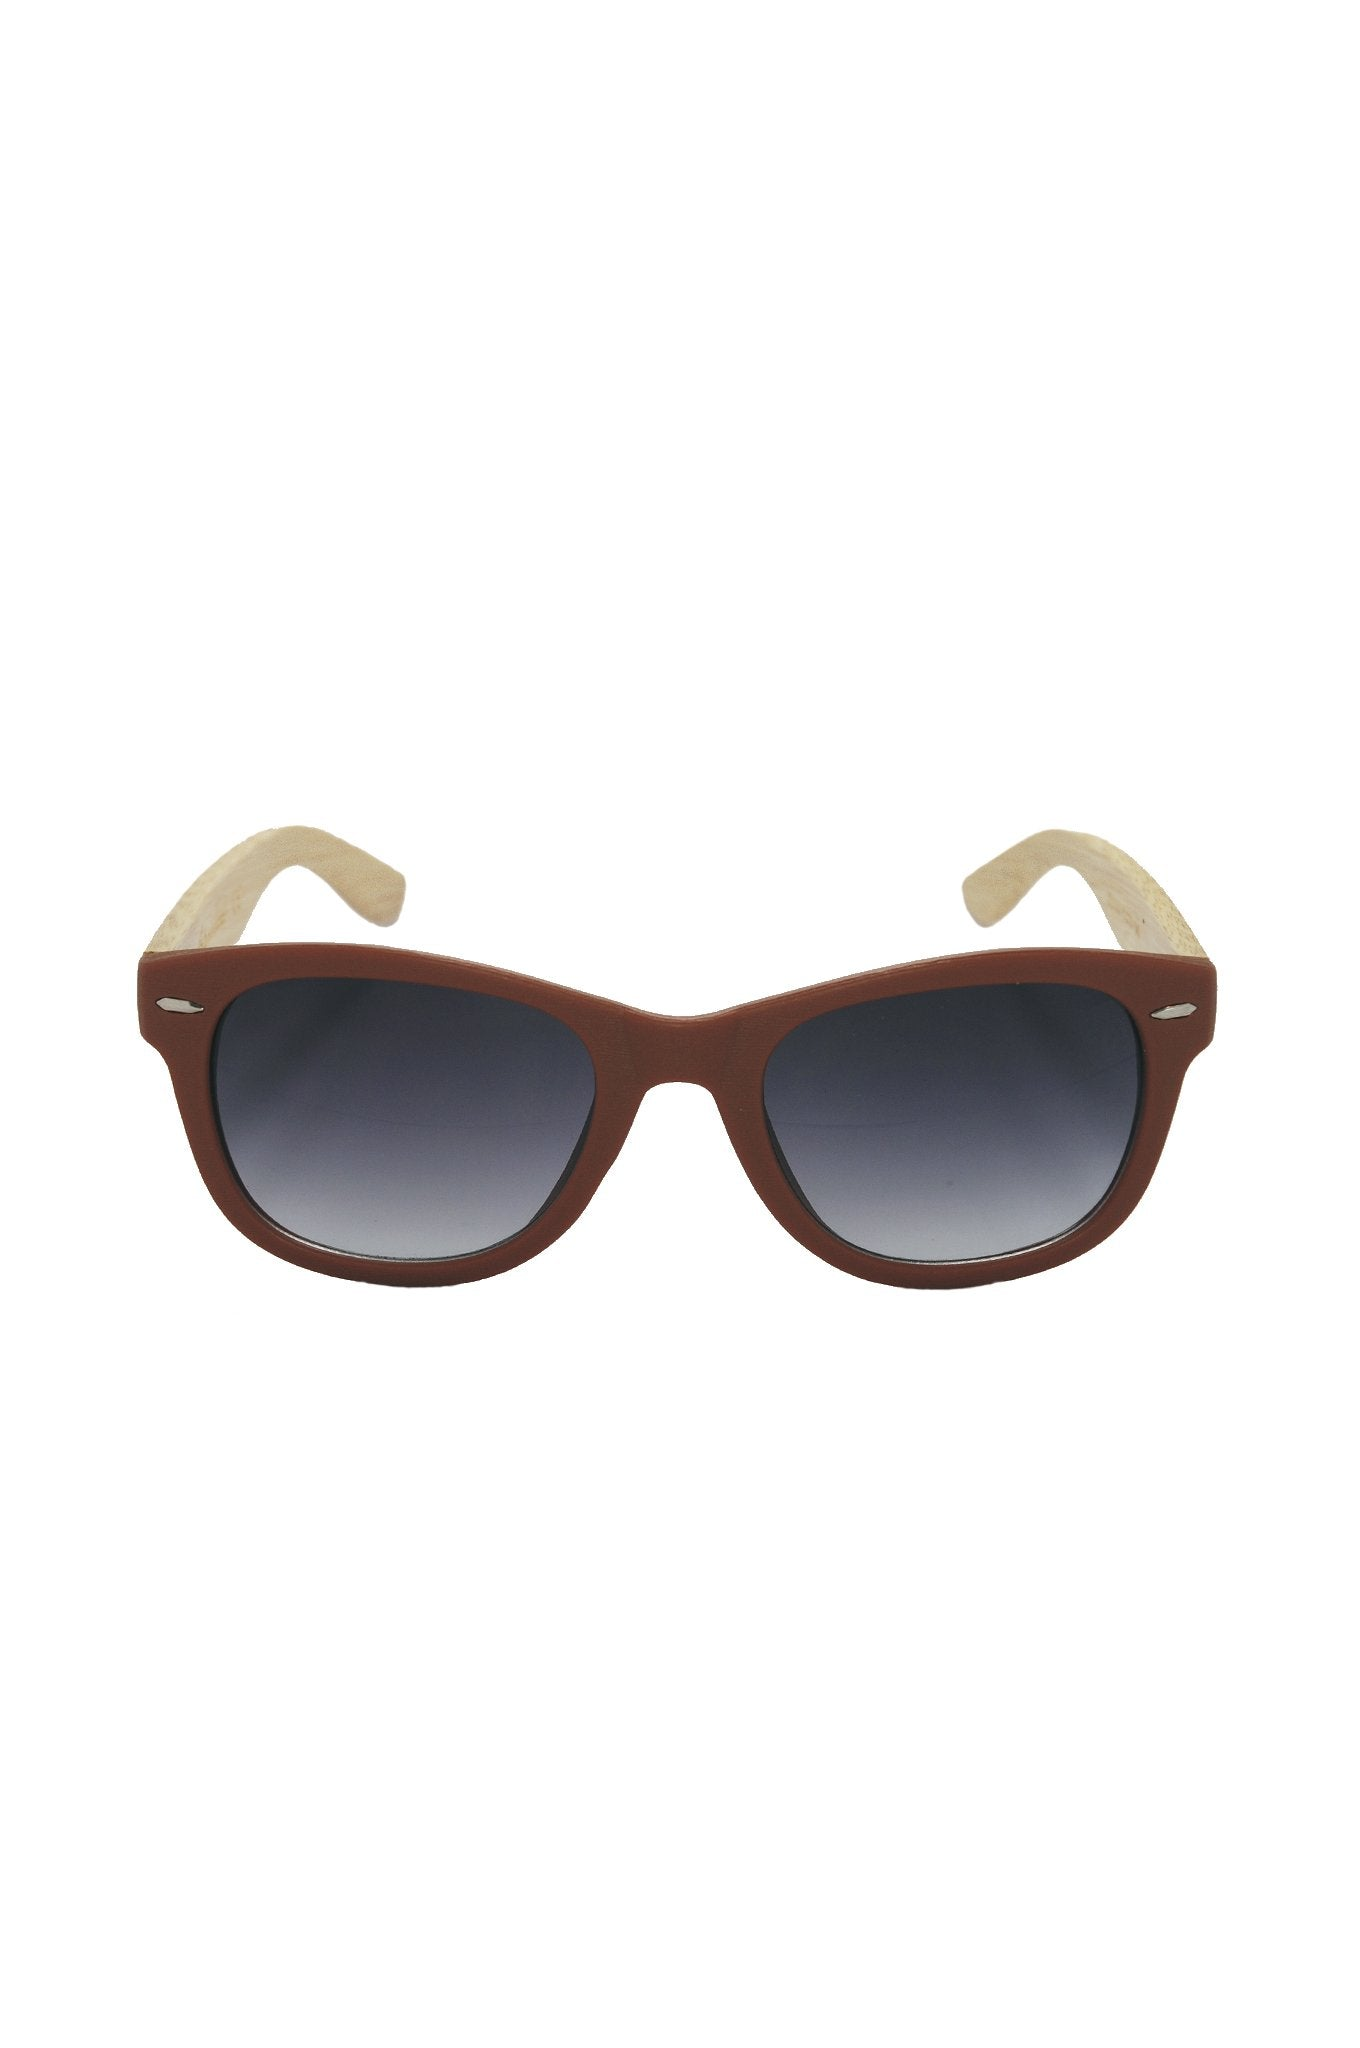 Sunglasses - TRENTO Terra Eco Sunglasses By Antonio Verde